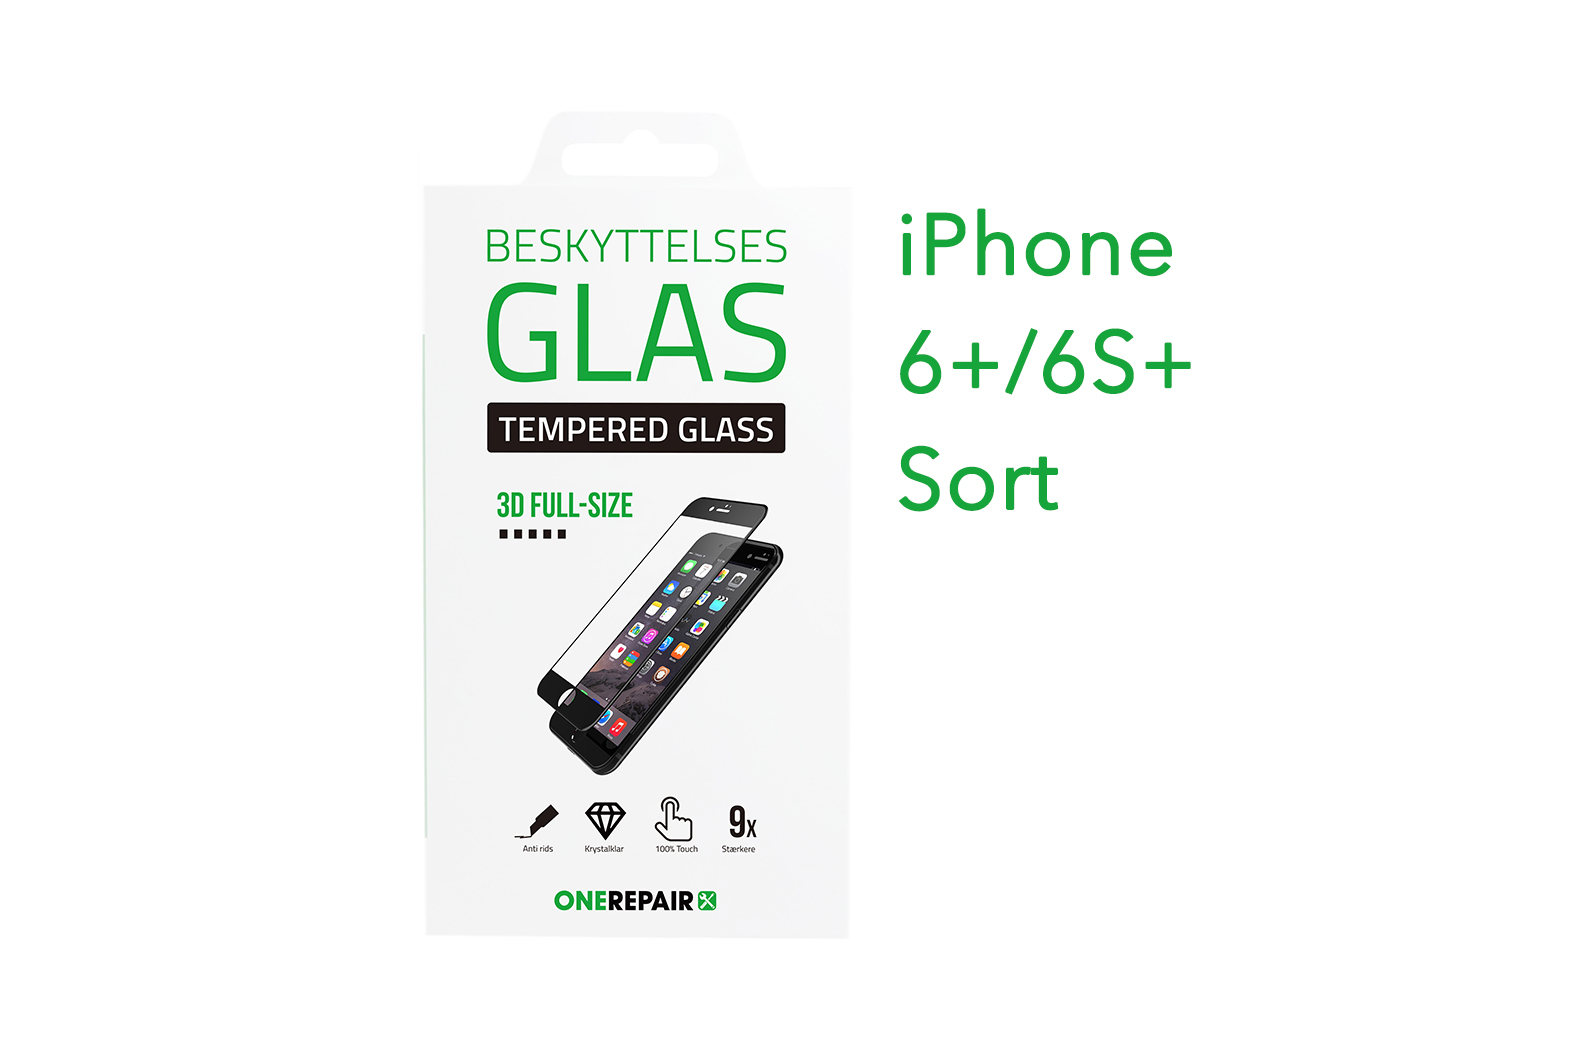 351274_iPhone_6+_6S+_Plus_Fullsize_Full_Size_3D_Beskyttelses_glas_Panser_Panzer_Tempered_Glass_OneRepair_00001